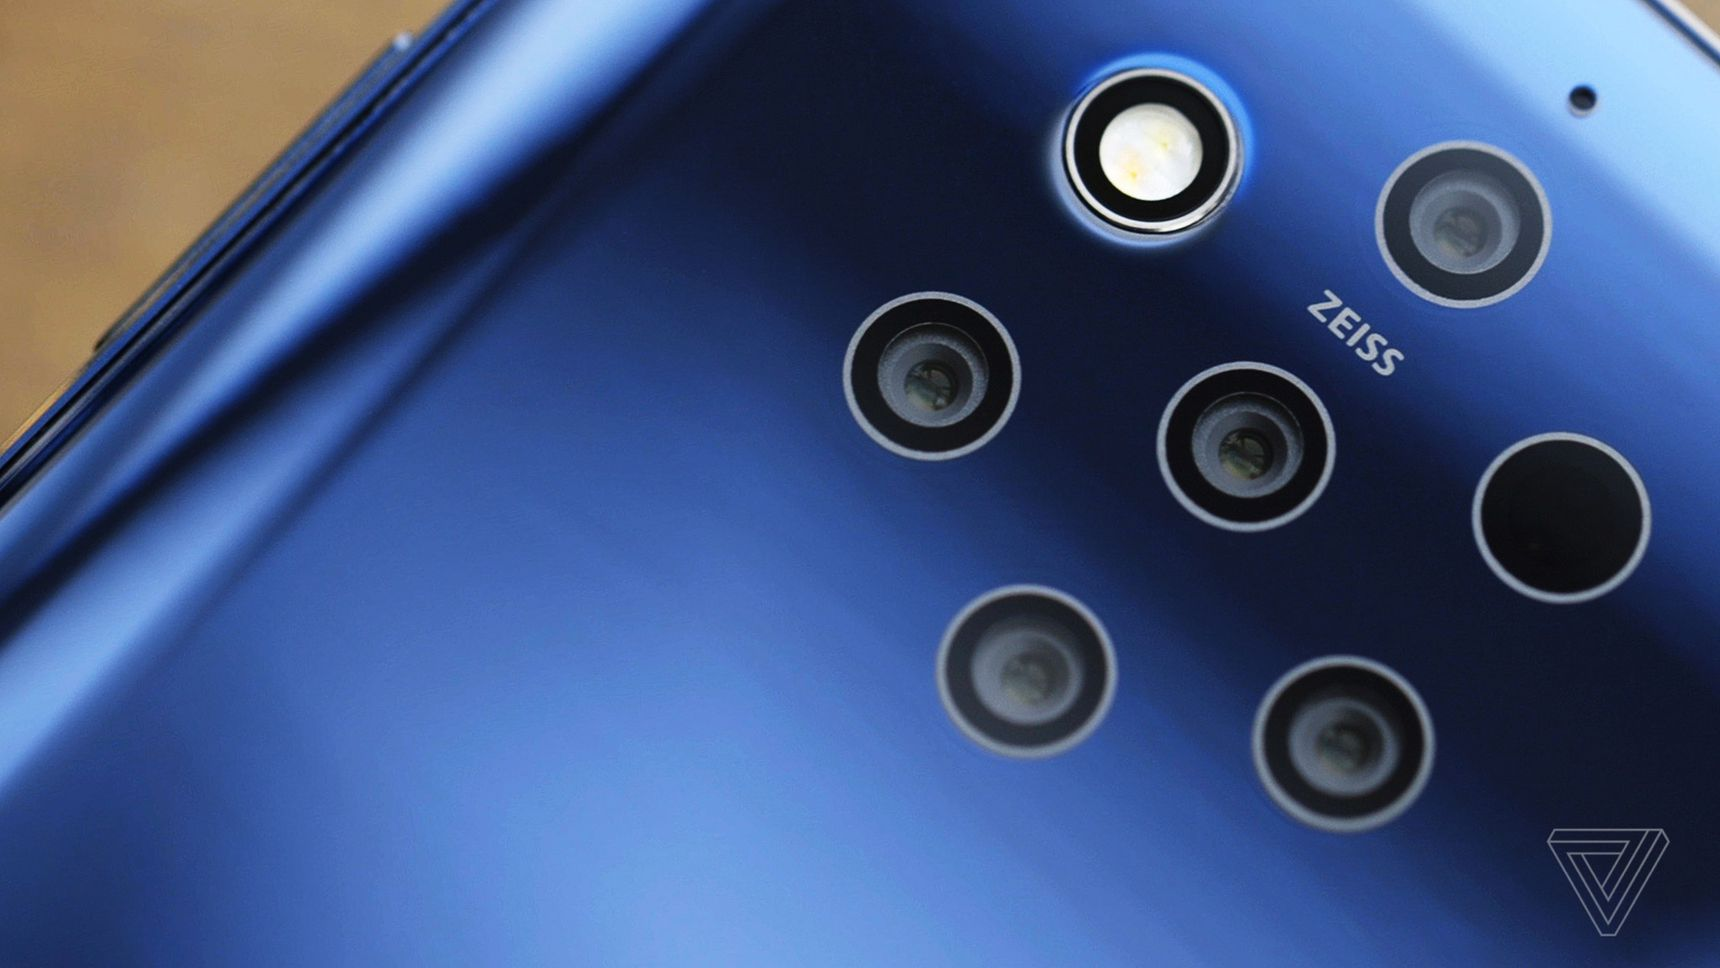 Techmeme: Hands-on with HMD's $699 Nokia 9 PureView with an in